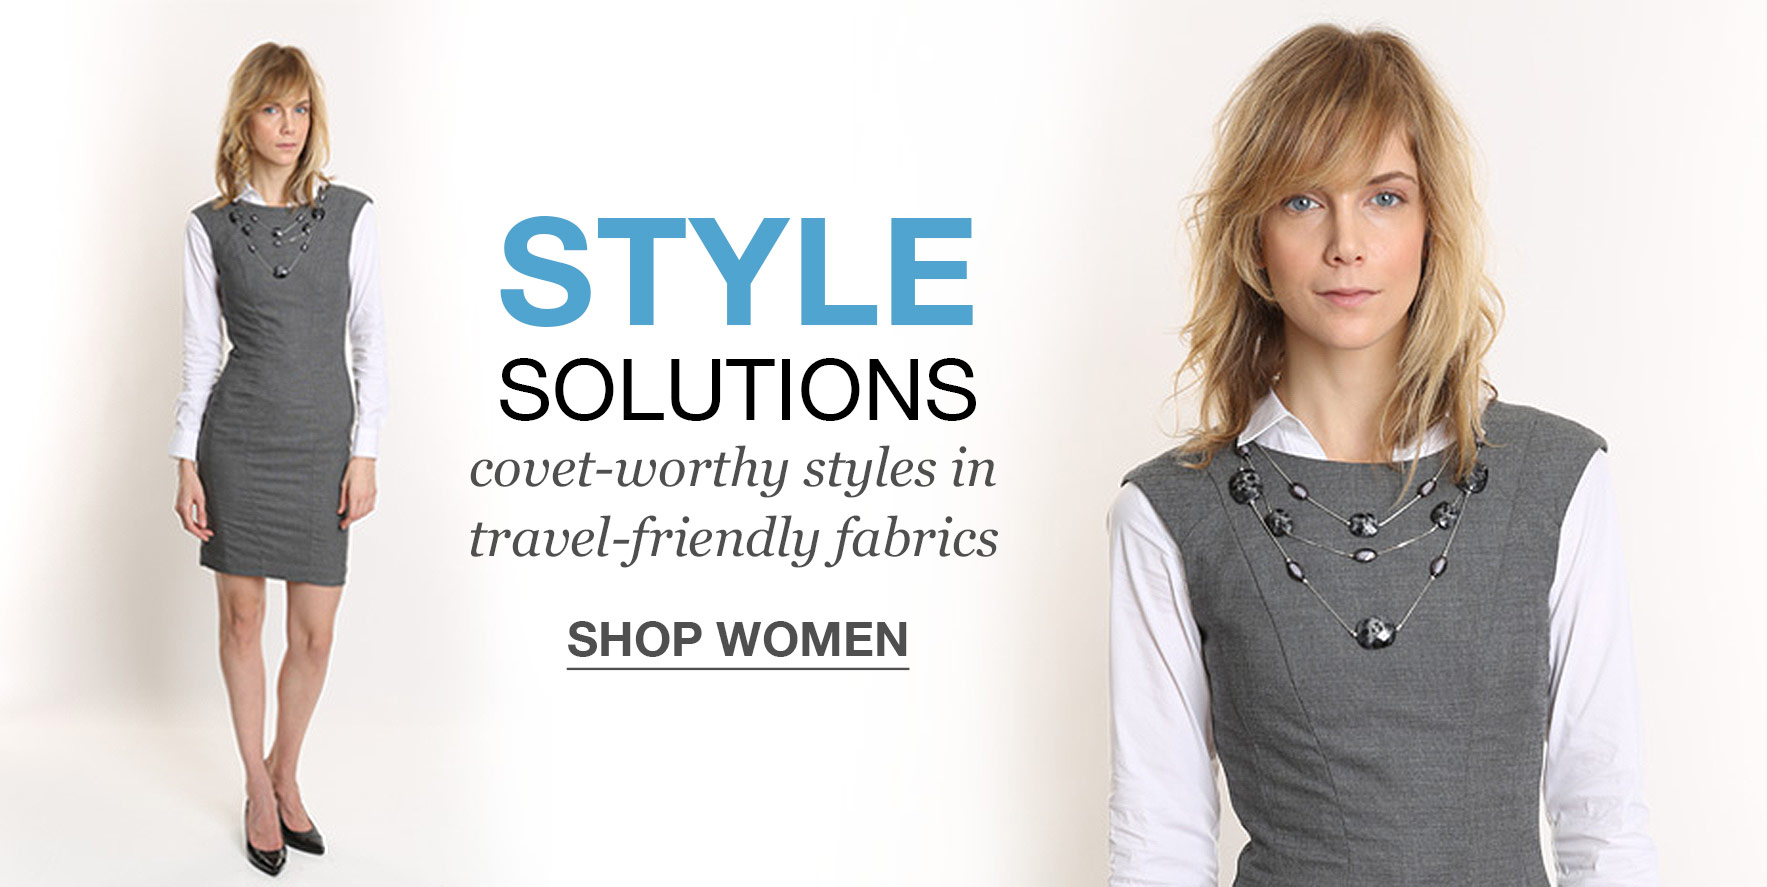 Style solutions - covet-worthy styles in travel-friendly fabrics - Click to Shop Woman